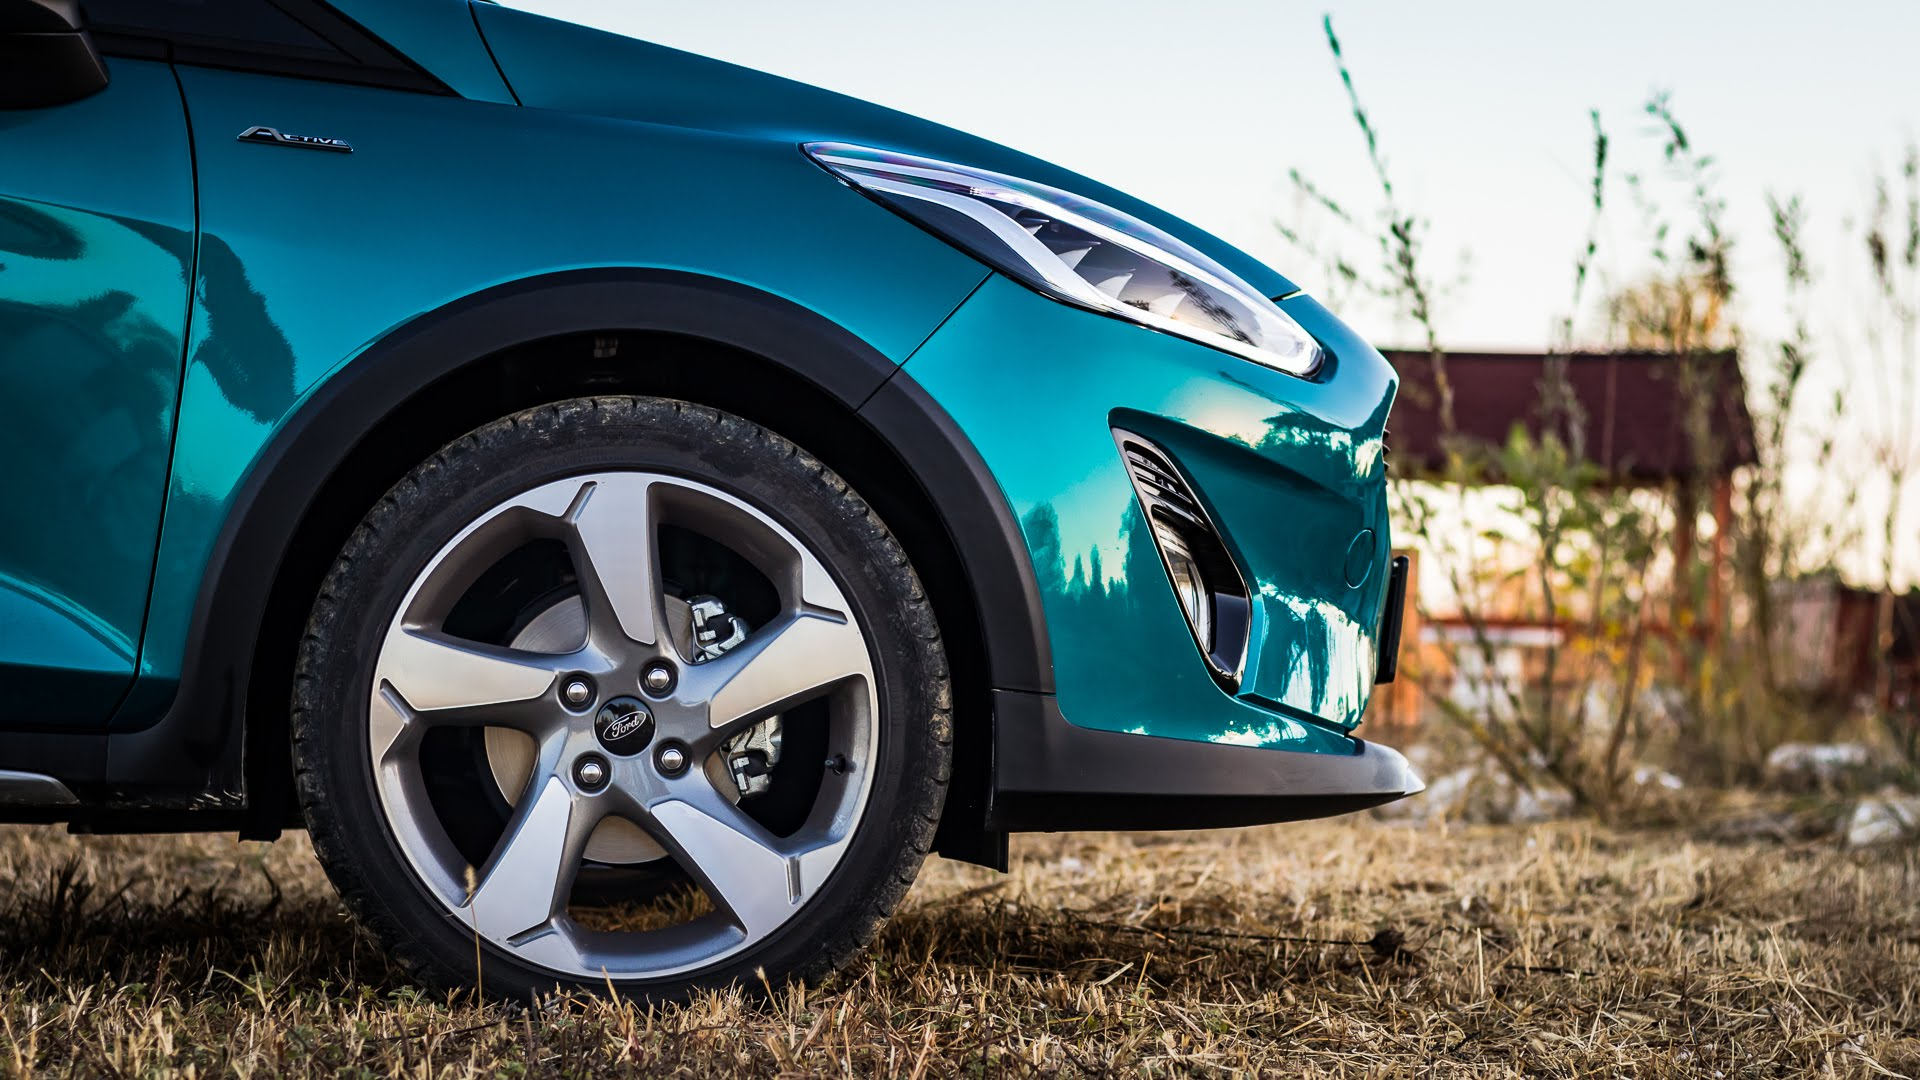 Ford Fiesta Active 1 0 Ecoboost 100 Cp At6 Review Gadget Ro Hi